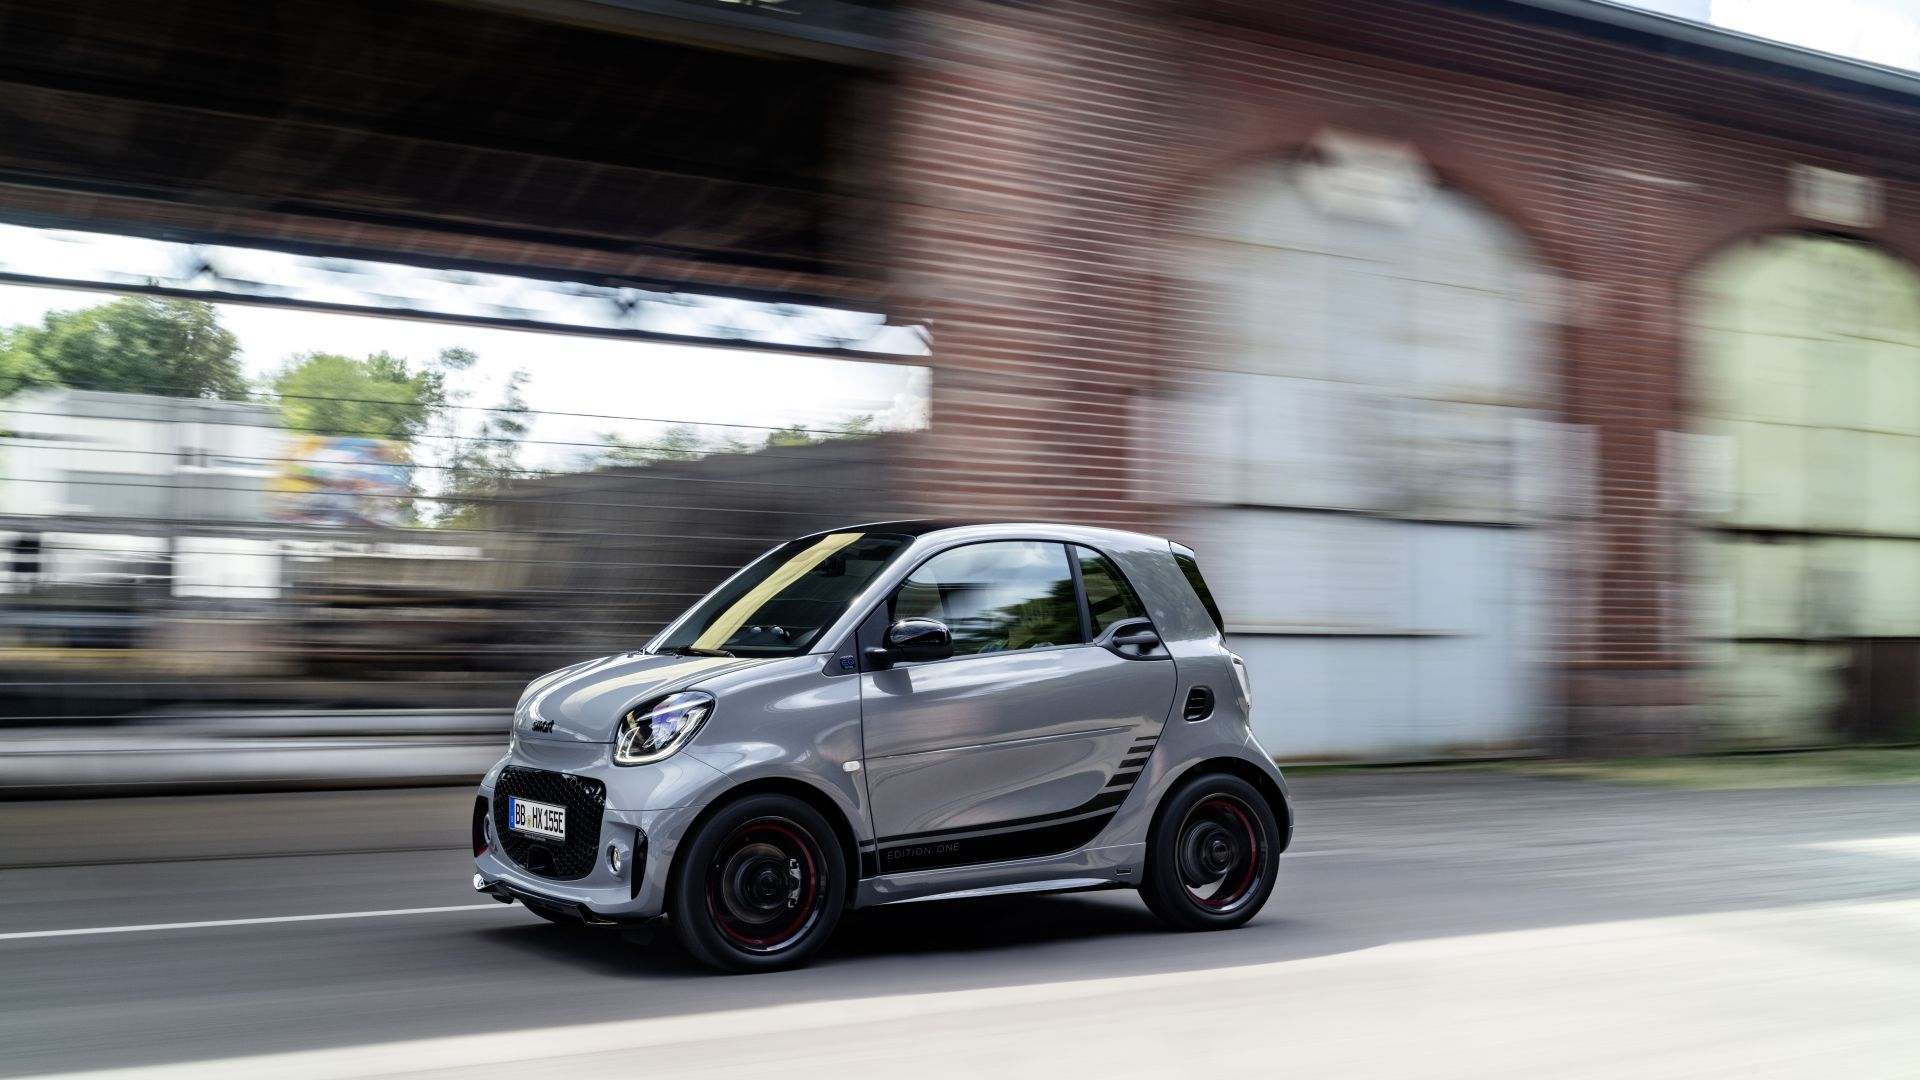 Smart EQ fortwo, 2020 cars, electric cars, 8K (horizontal)